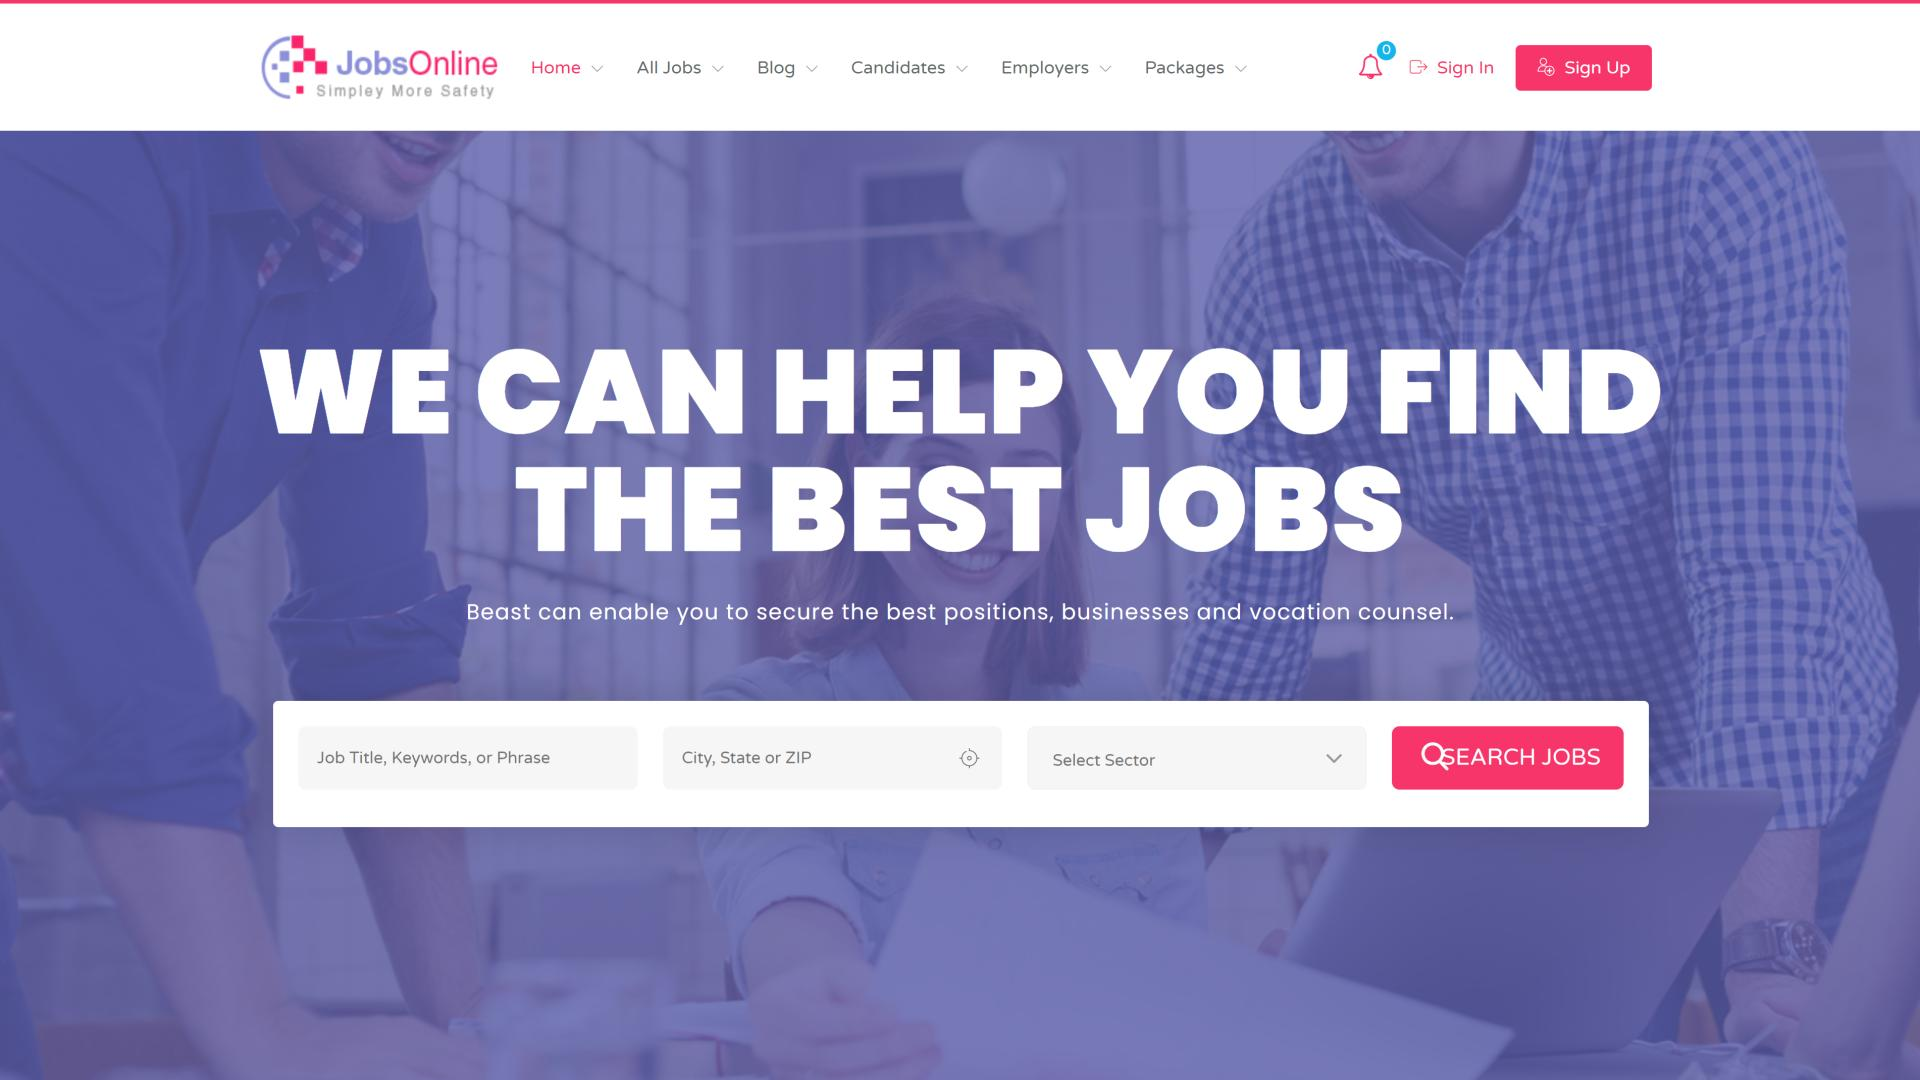 How to Make Job Portal & Job Board Website with WordPress & Careerfy 2021 – Like Indeed & Linkedin